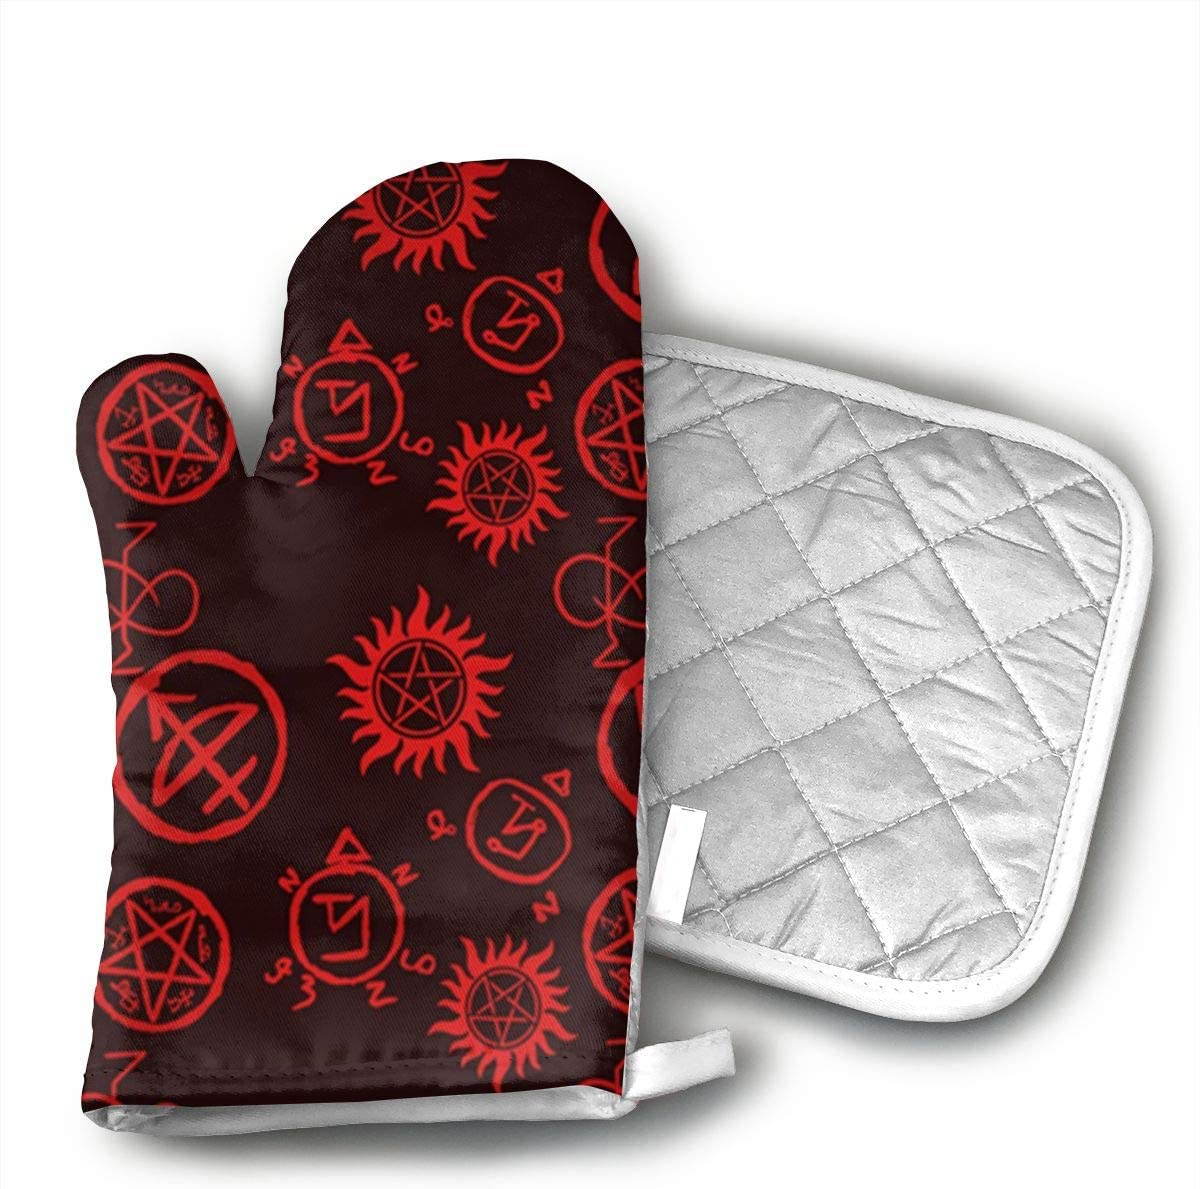 JFNNRUOP Supernatural Symbols Red Oven Mitts,with Potholders Oven Gloves,Insulated Quilted Cotton Potholders